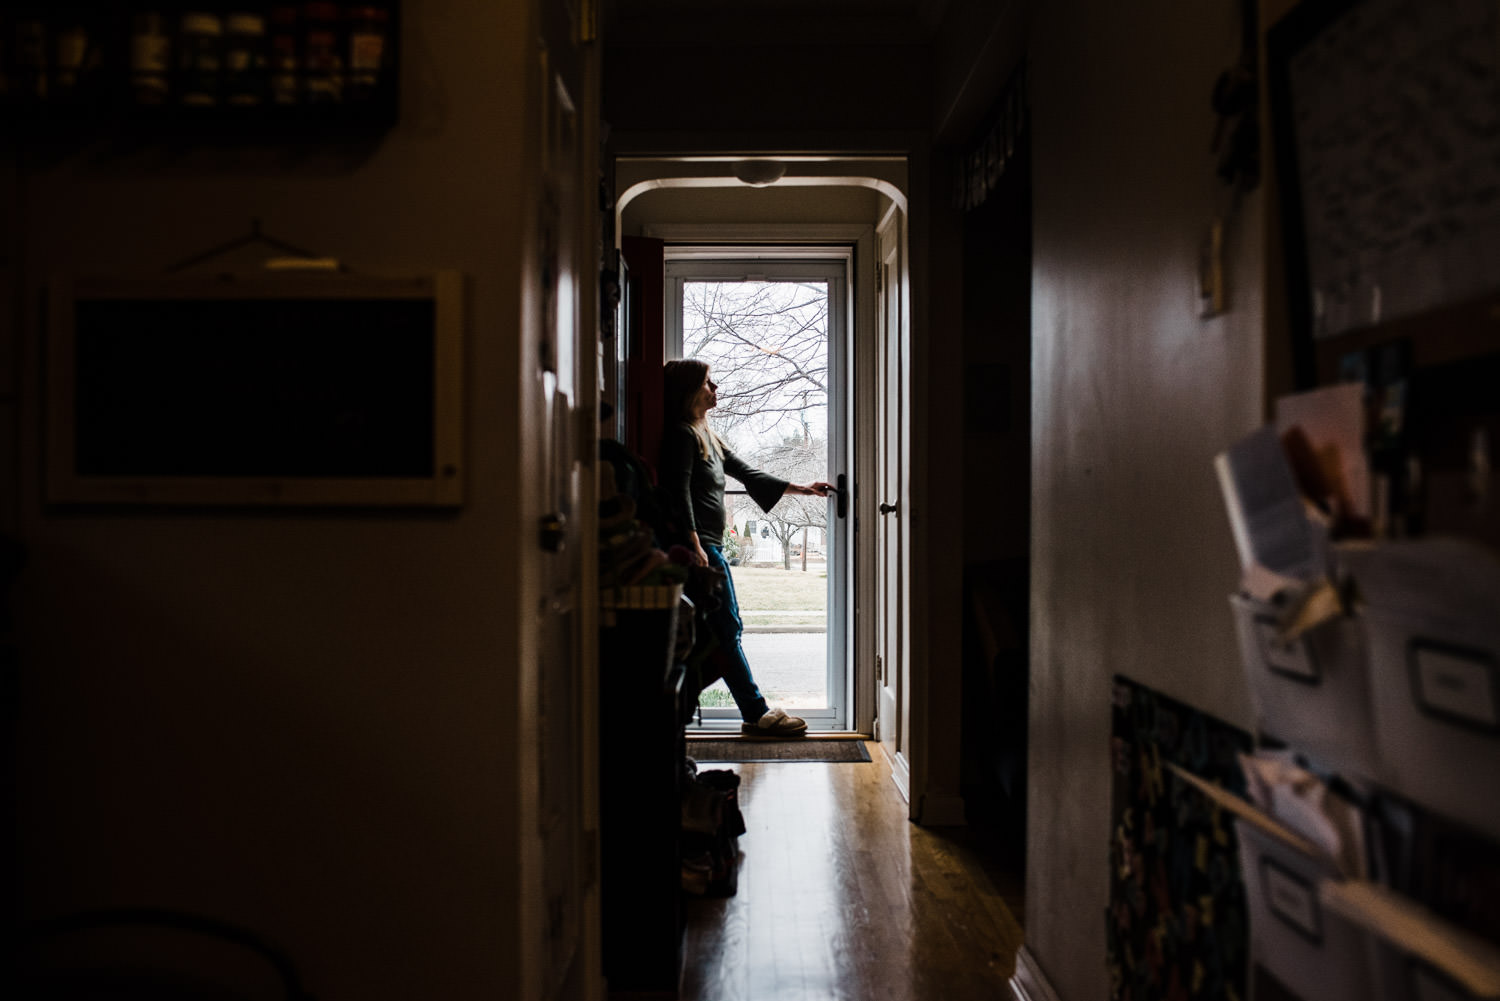 A woman stands in a doorway.